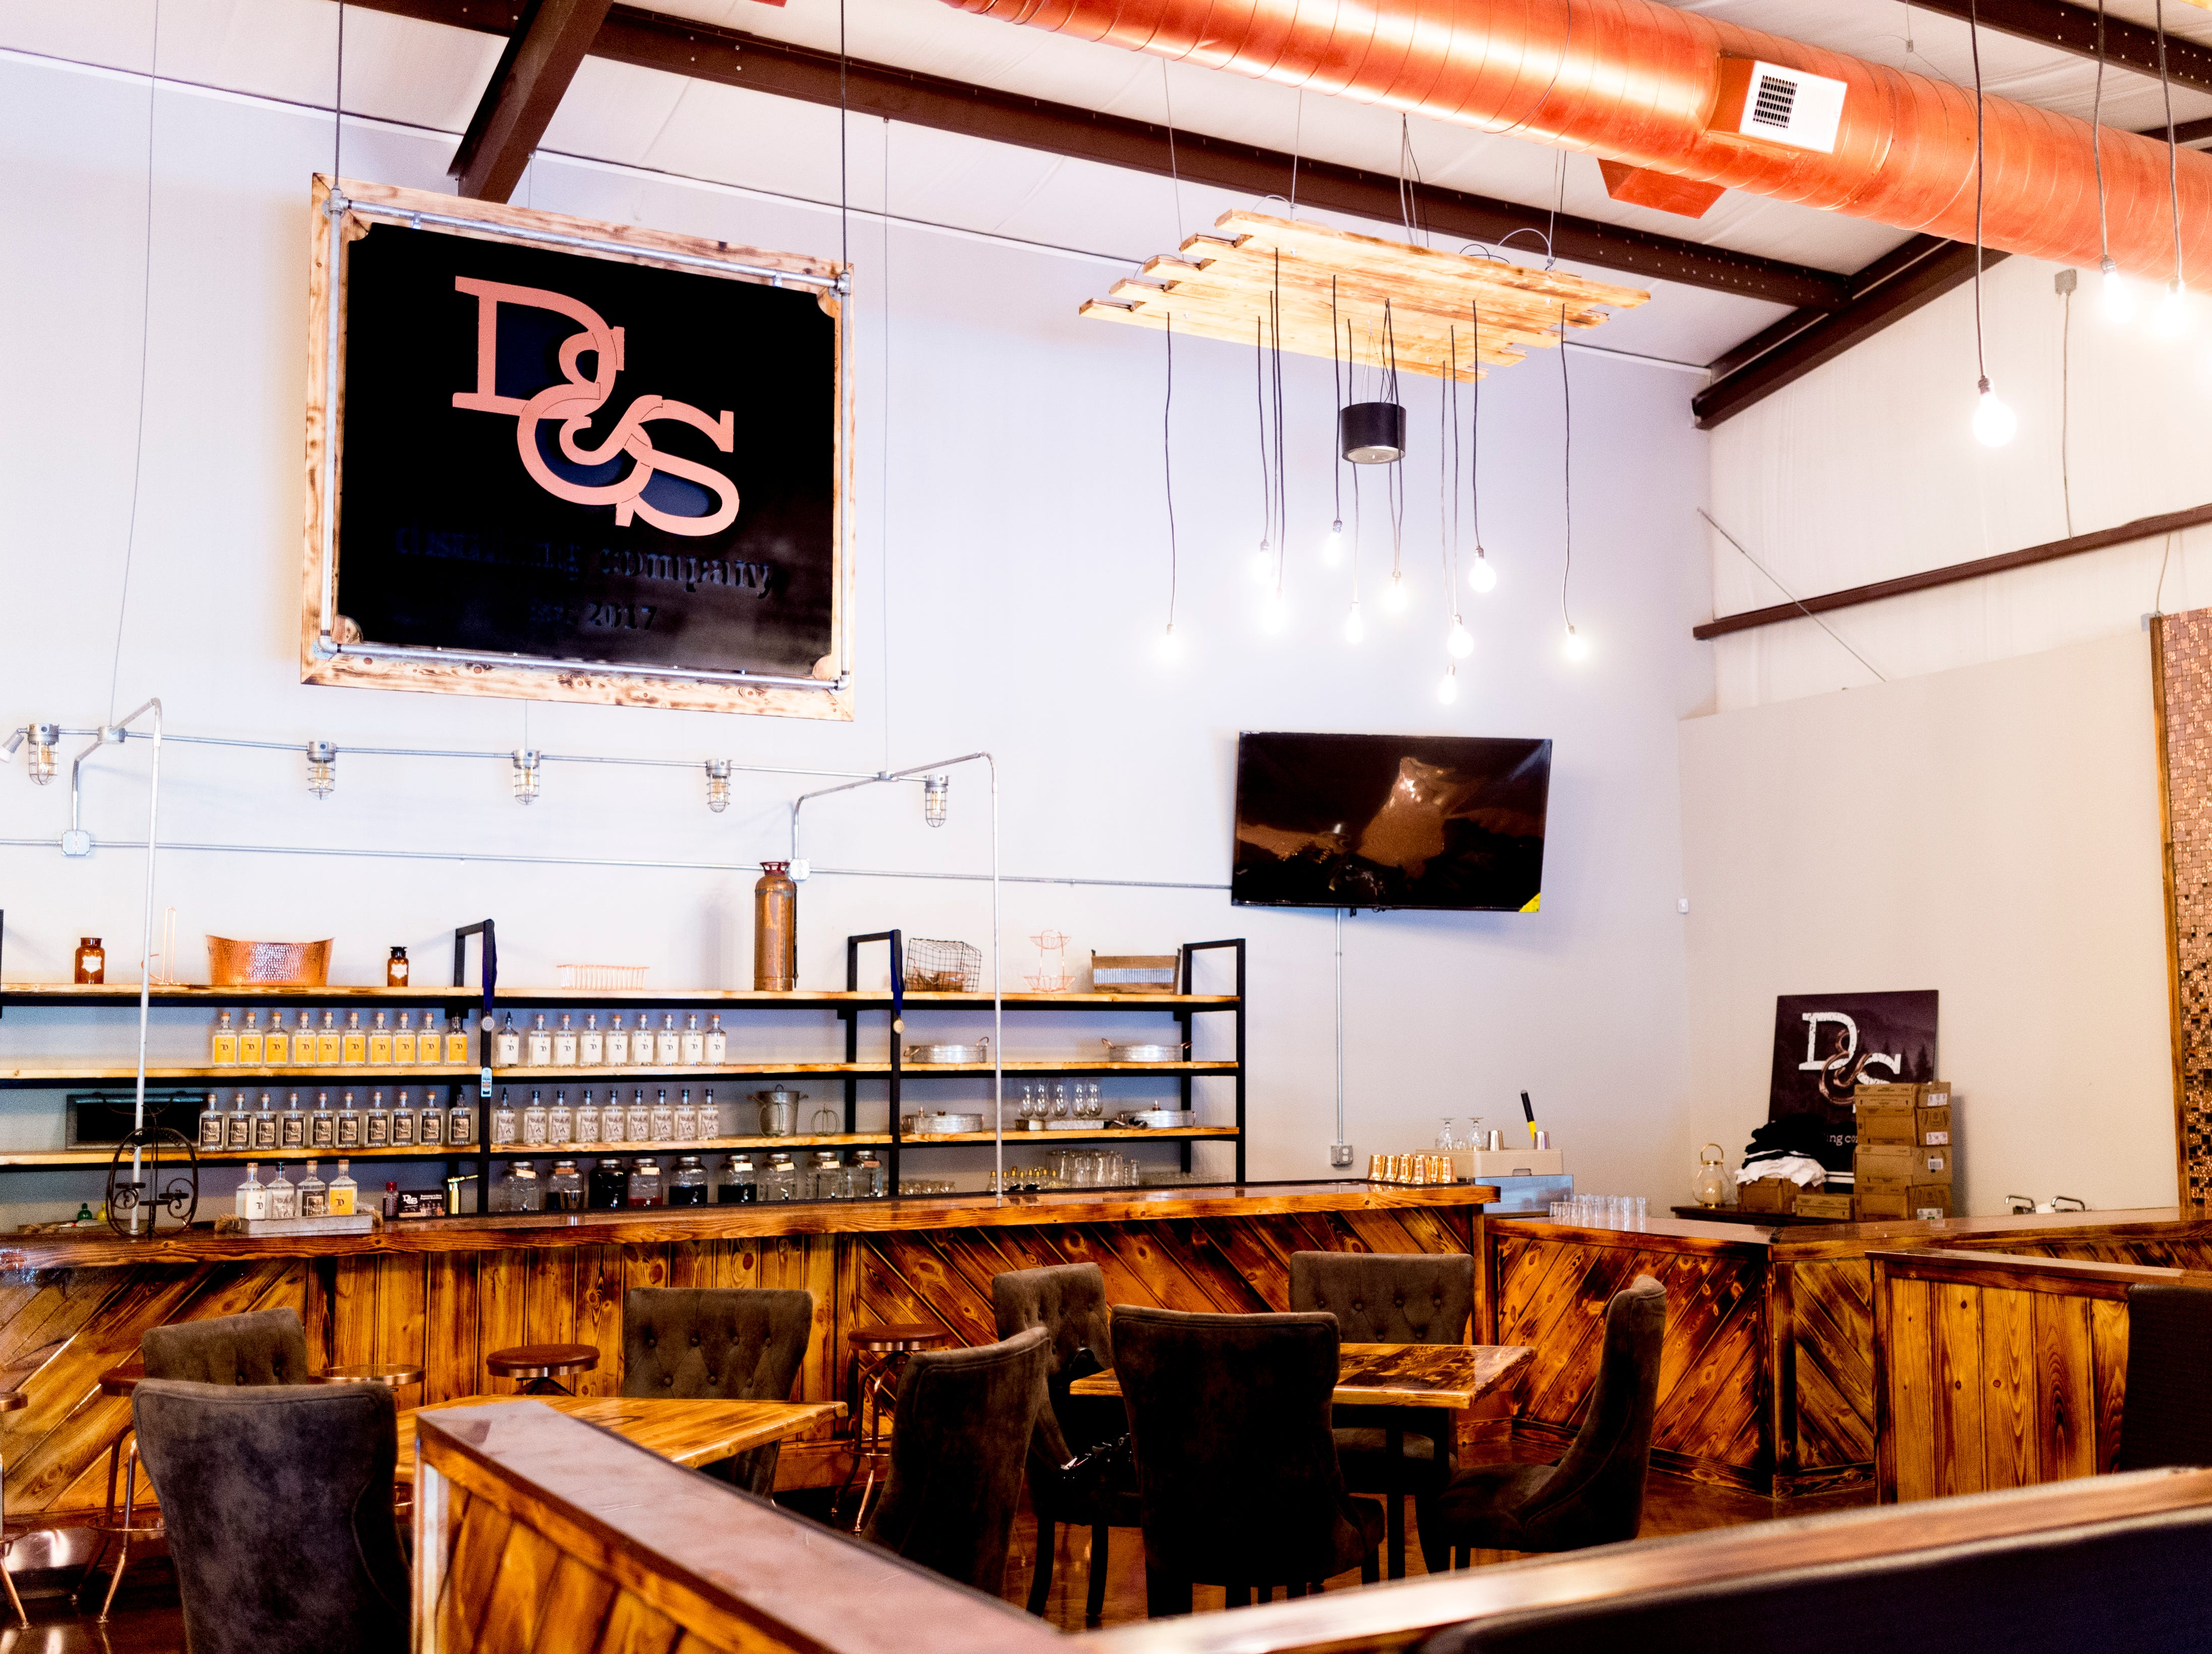 The bar and seating are inside D&S Distilling on 1610 Jenkins Rd. in Sevierville, Tennessee on Tuesday, October 9, 2018. D&S Distilling is TennesseeÕs first completely organic and gluten-free distillery.